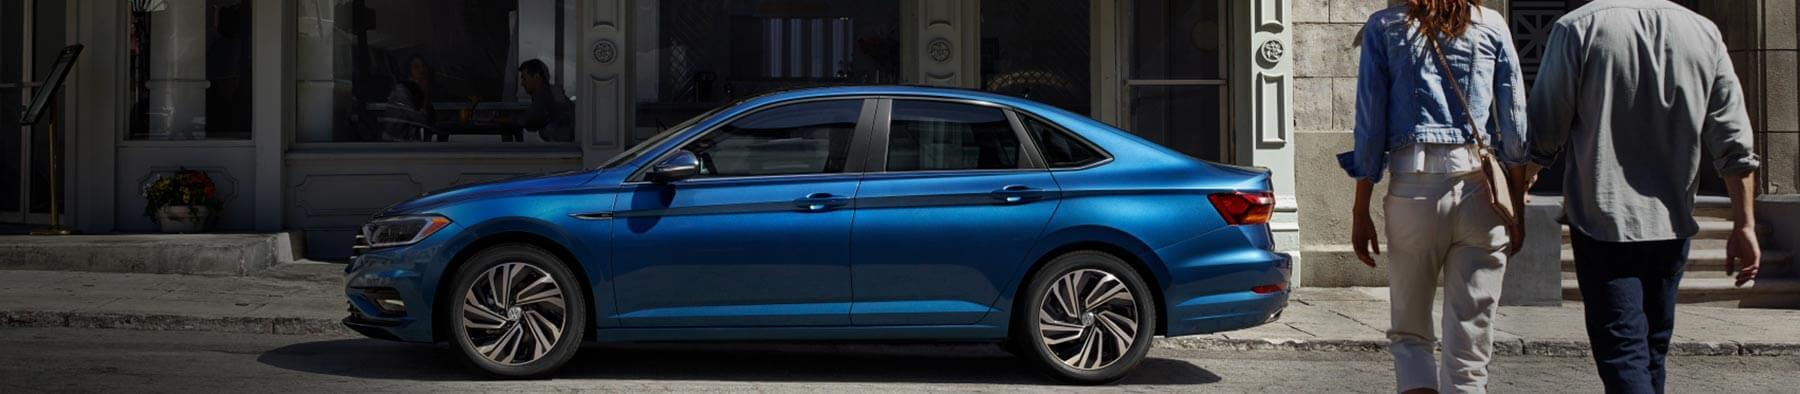 full view of 2019 jetta parked